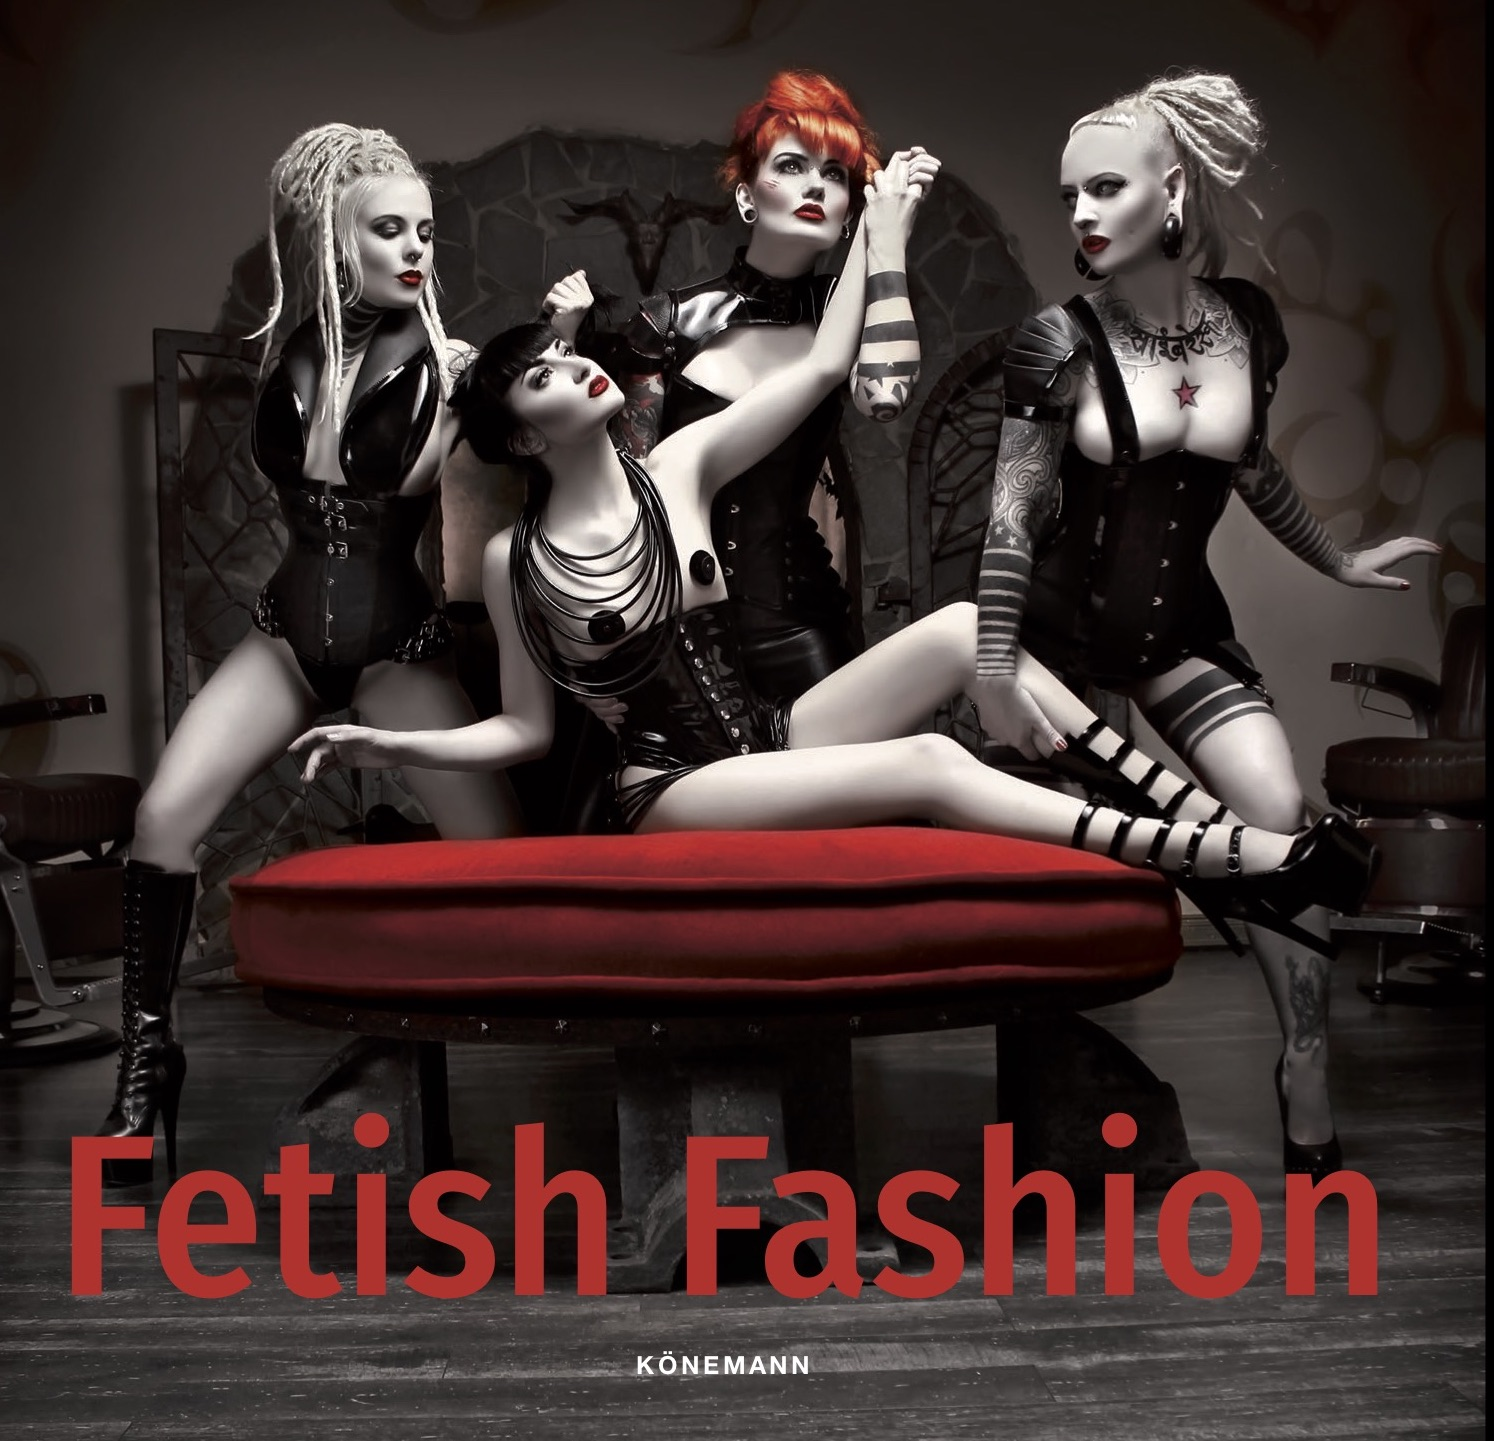 Fetish Fashion